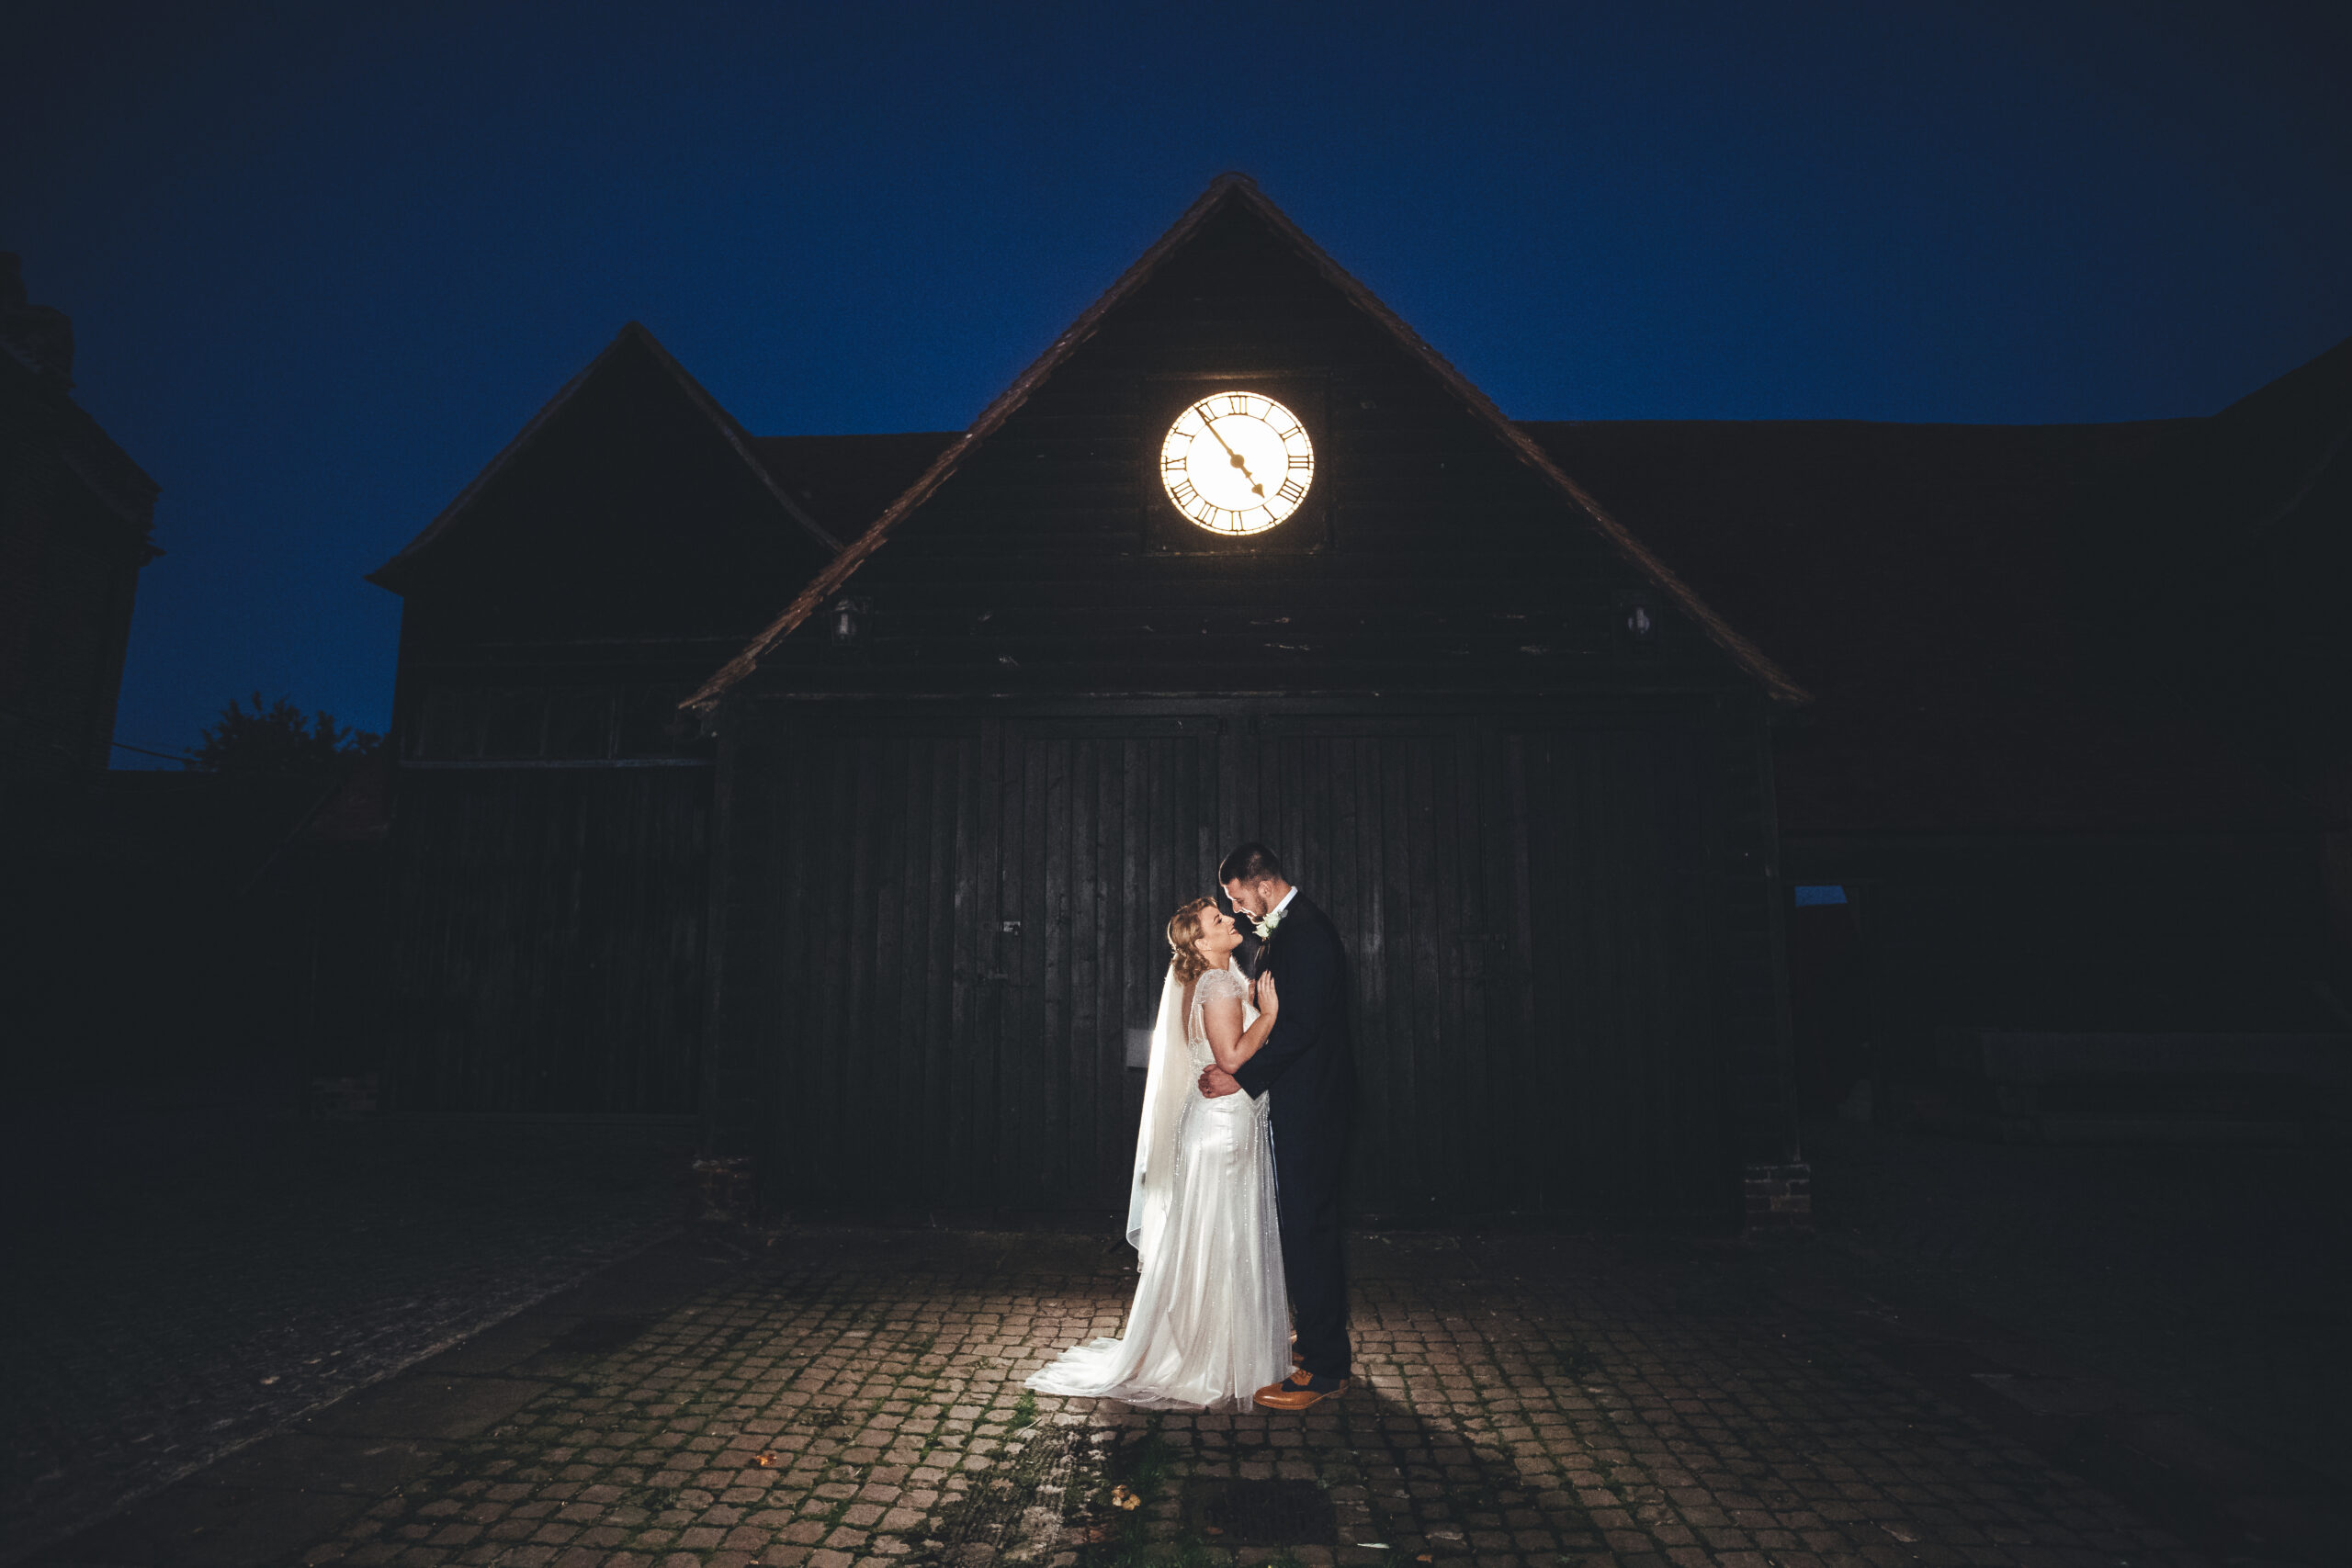 Bride and groom outside barn at night